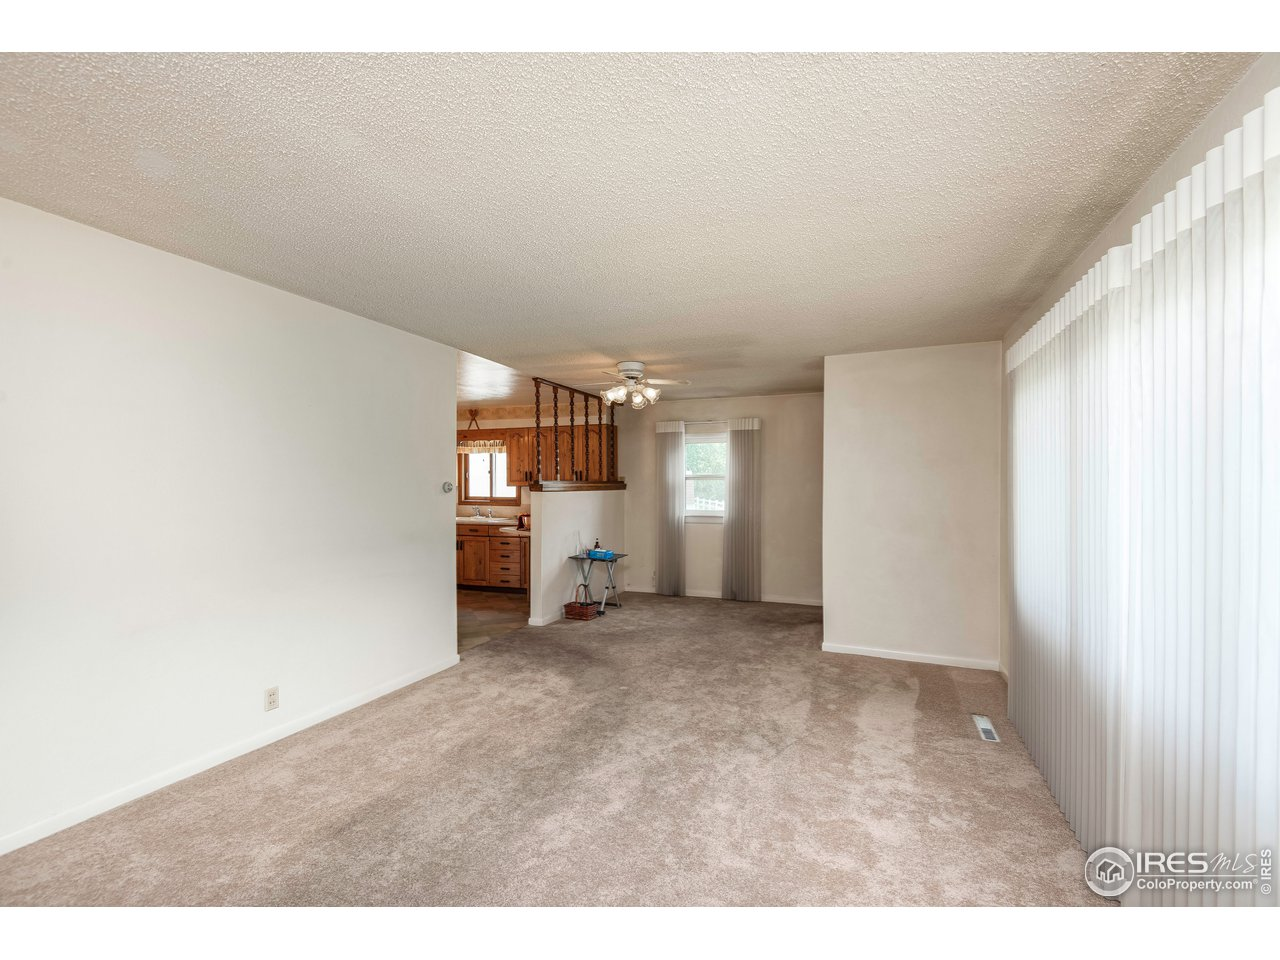 Entry way and living room